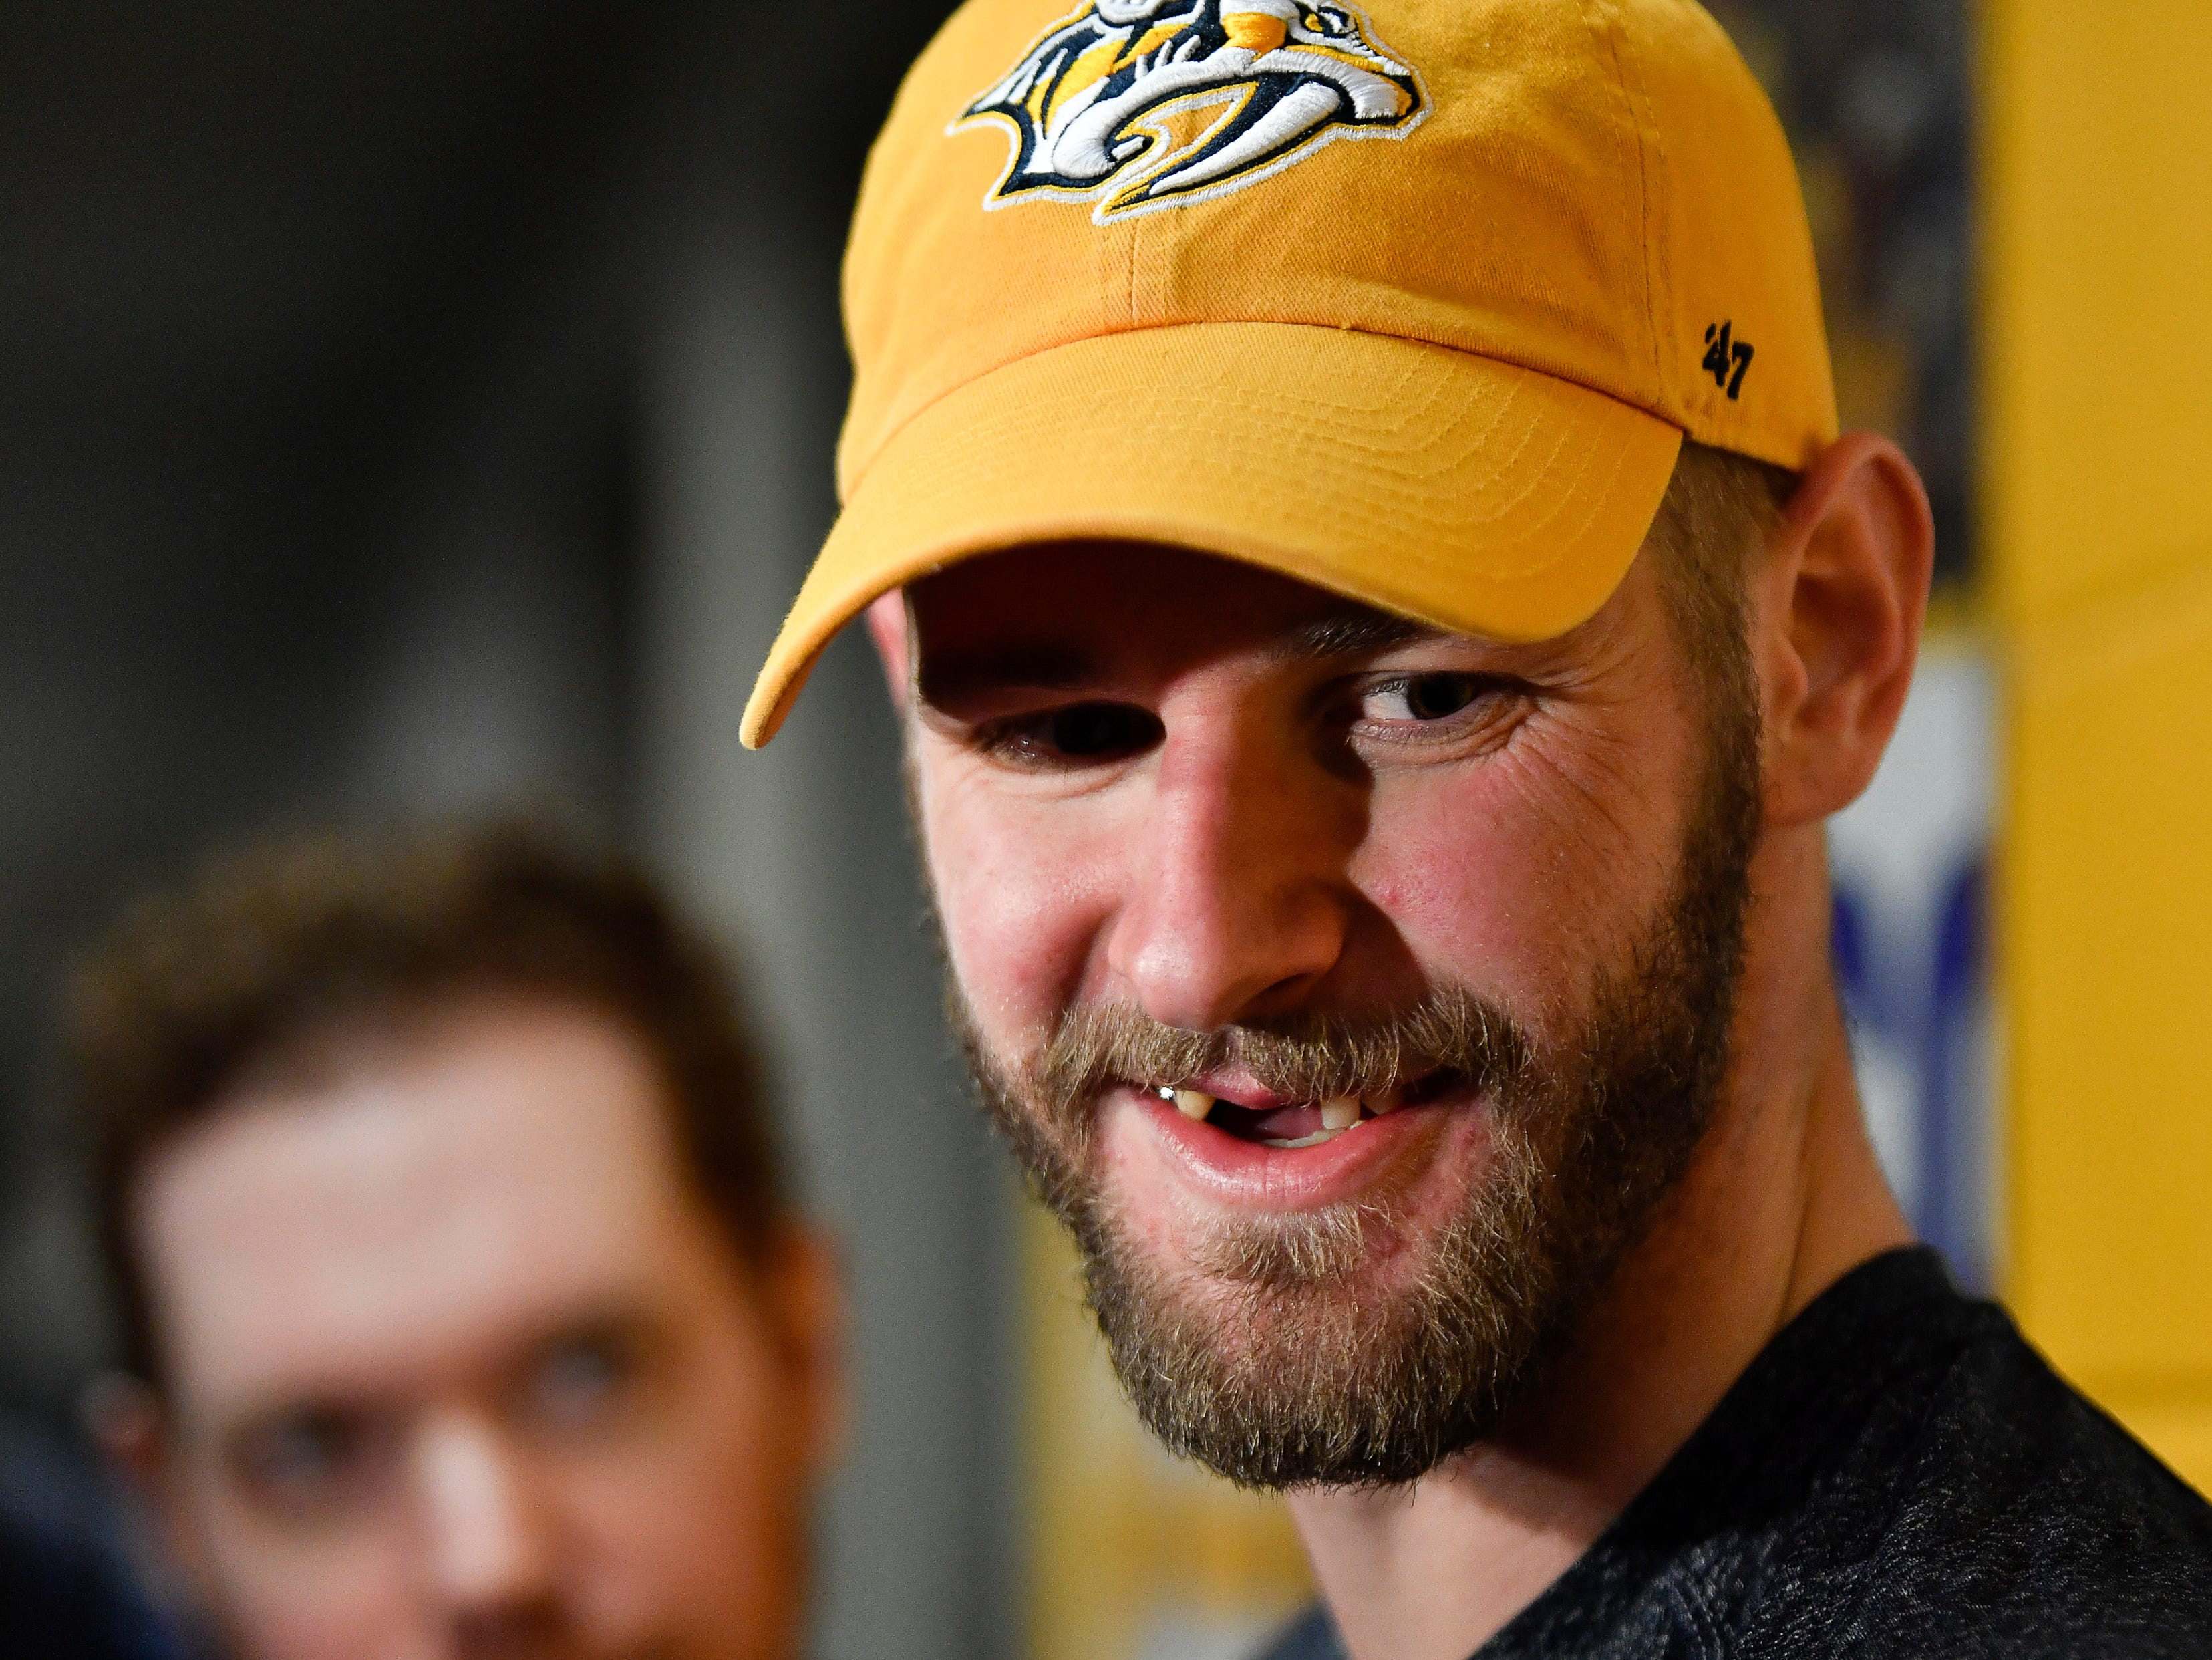 Predators left wing Austin Watson (51) smiles as he takes questions from the media after his first practice at Centennial Sportsplex after serving an NHL suspension Wednesday, March 20, 2019 in Nashville, Tenn.